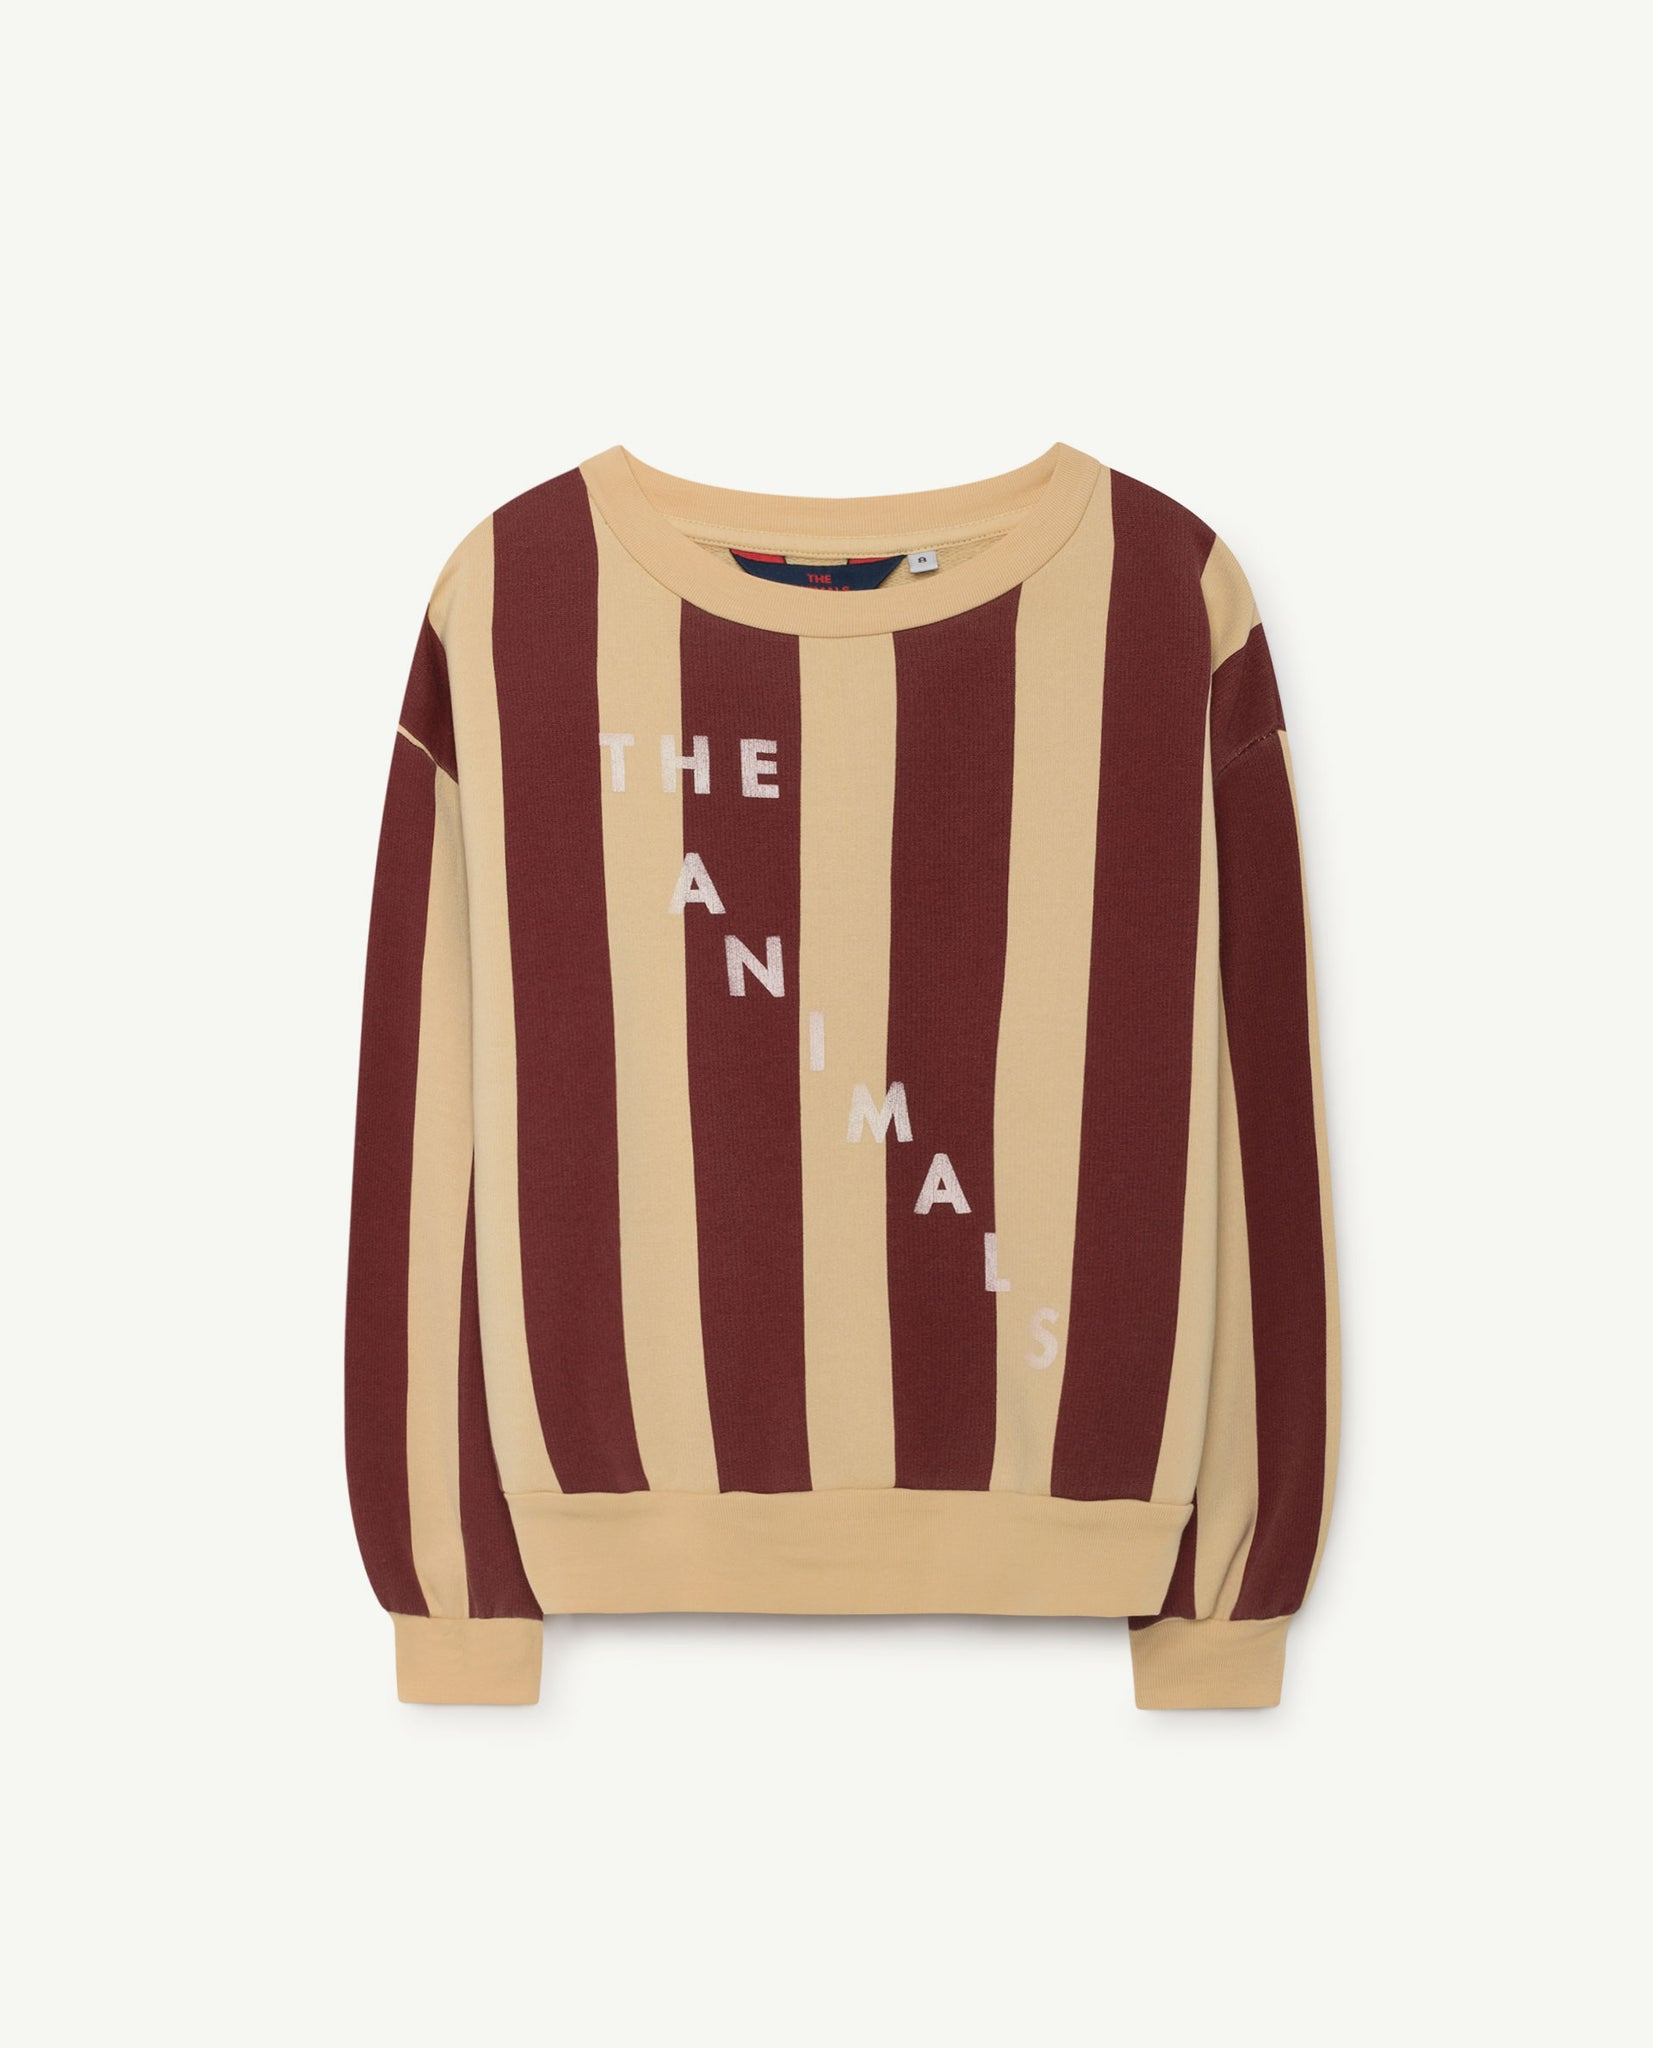 Bear kids sweatshirt - yellow/maroon